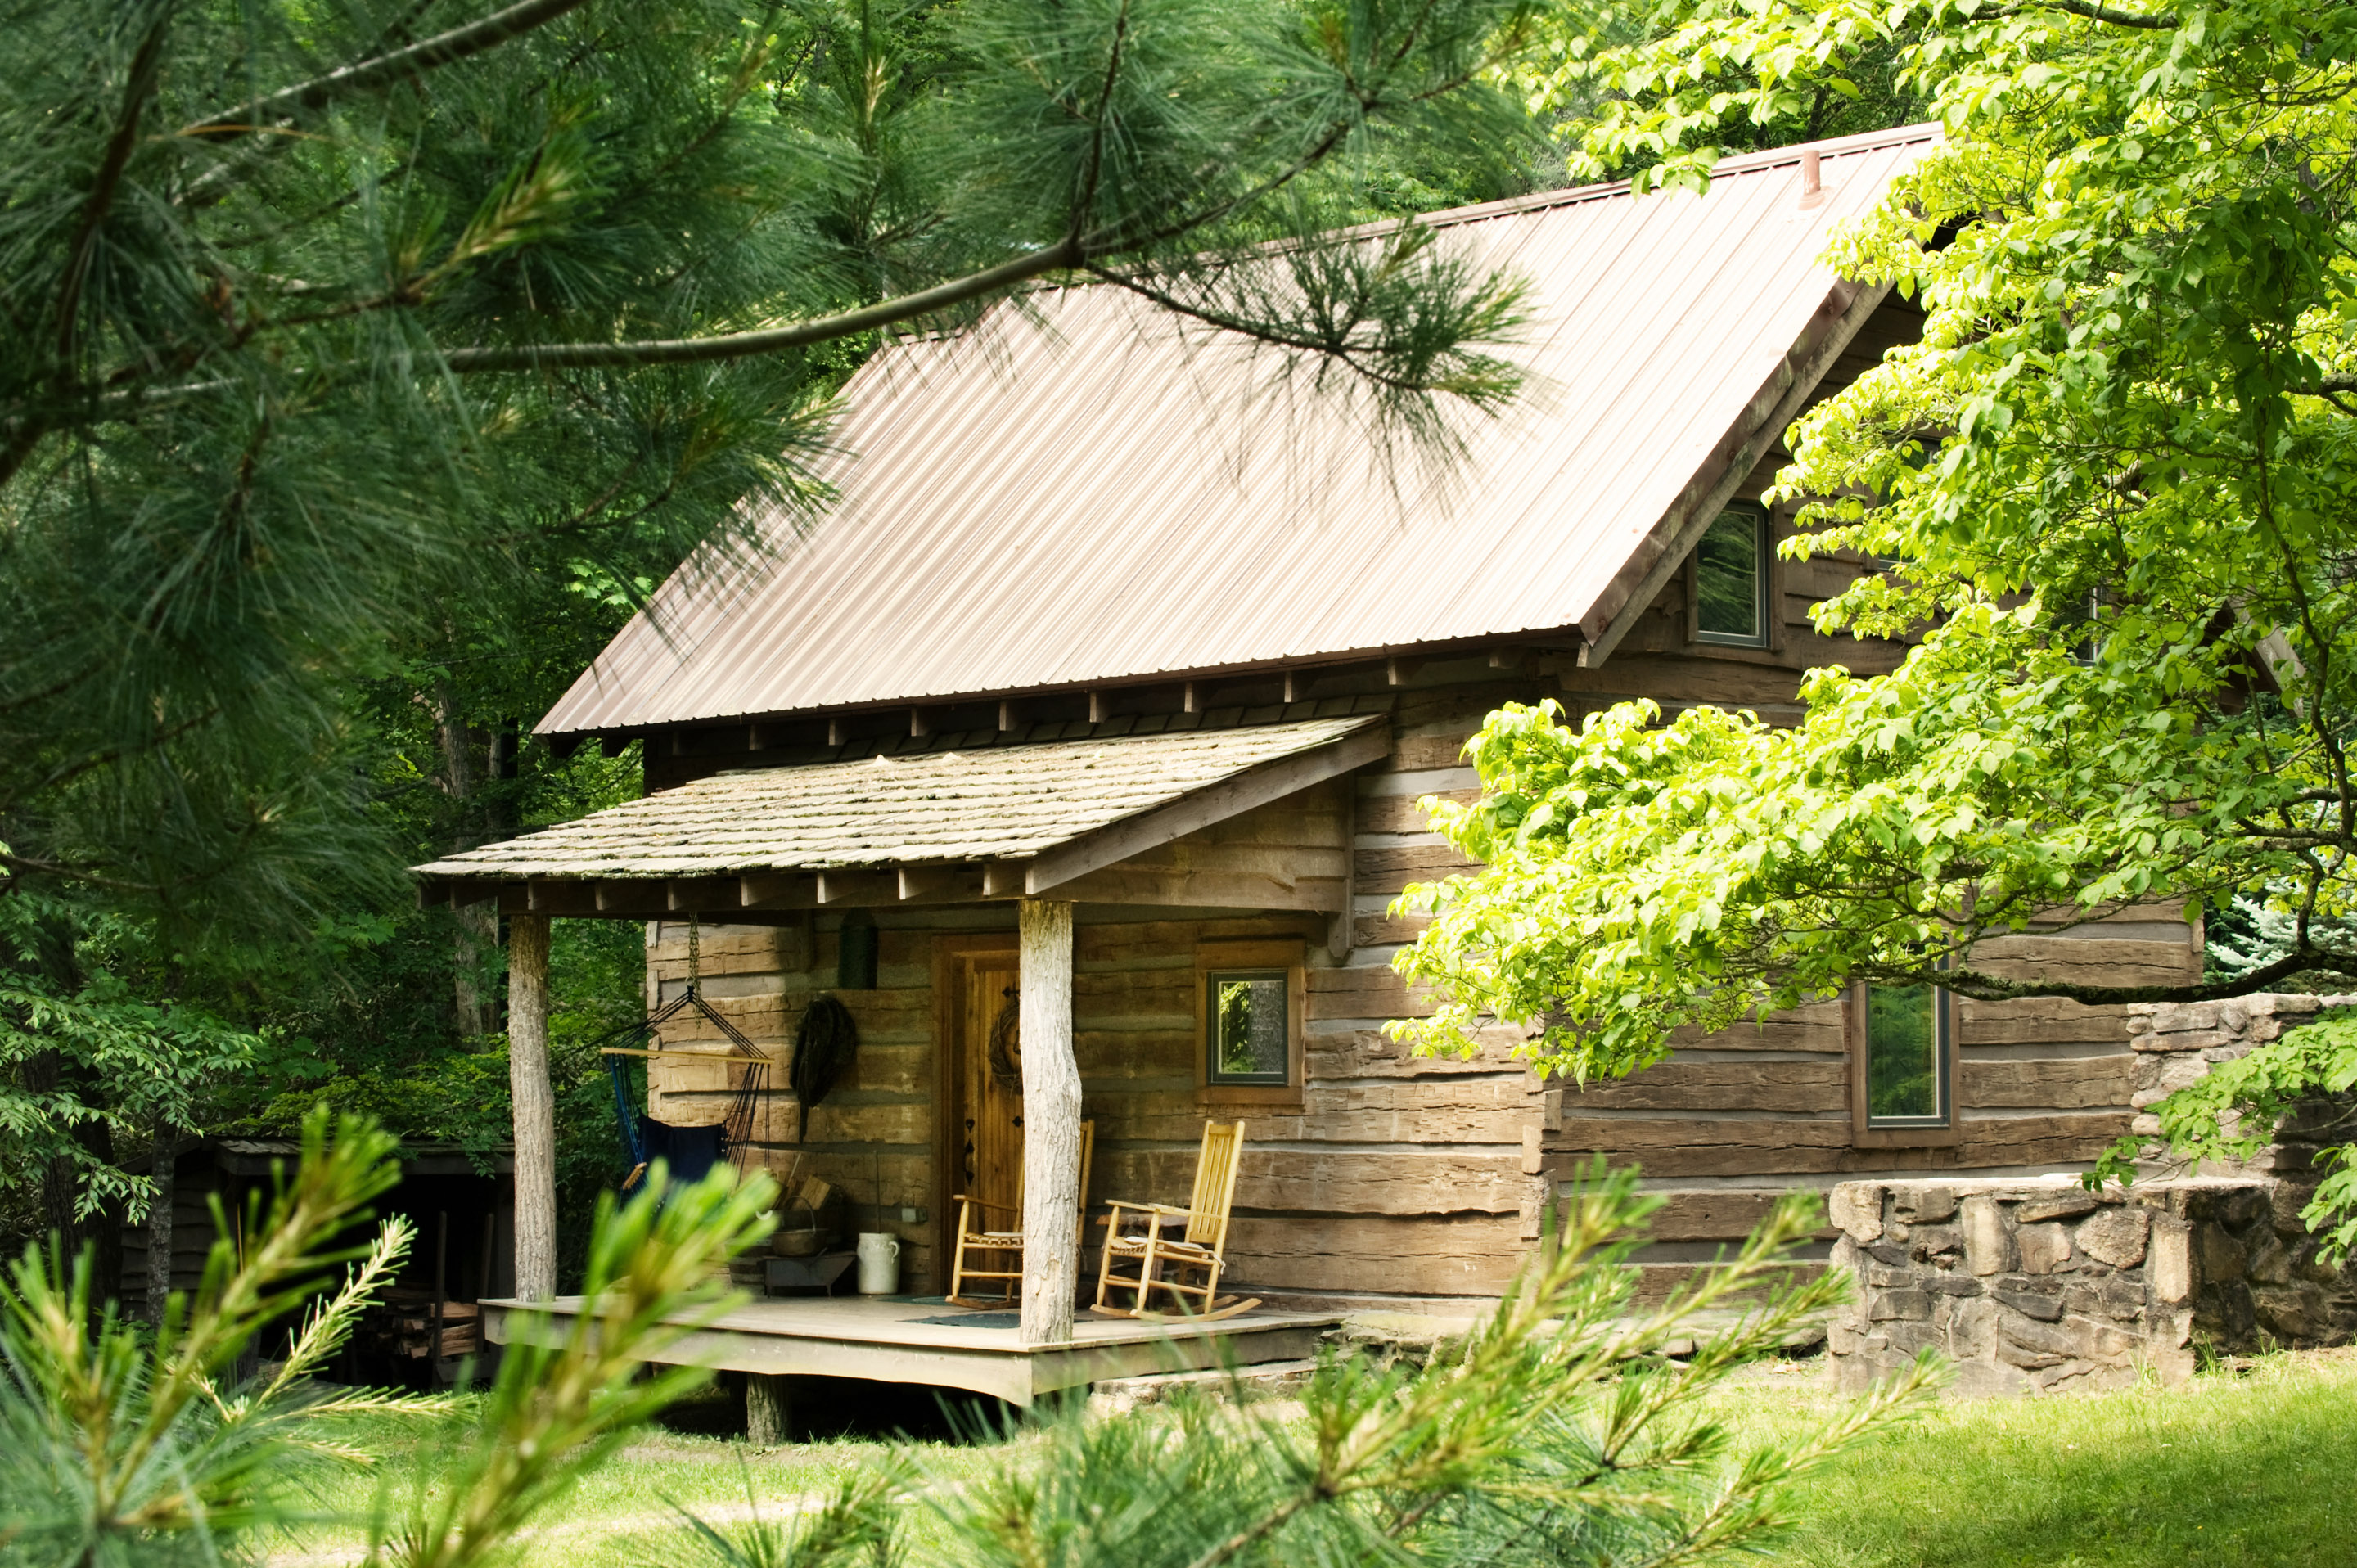 image rentals cabins log images mountain stay bear blue rental cabin the ridge nc jefferson about main above vacation click larger for black